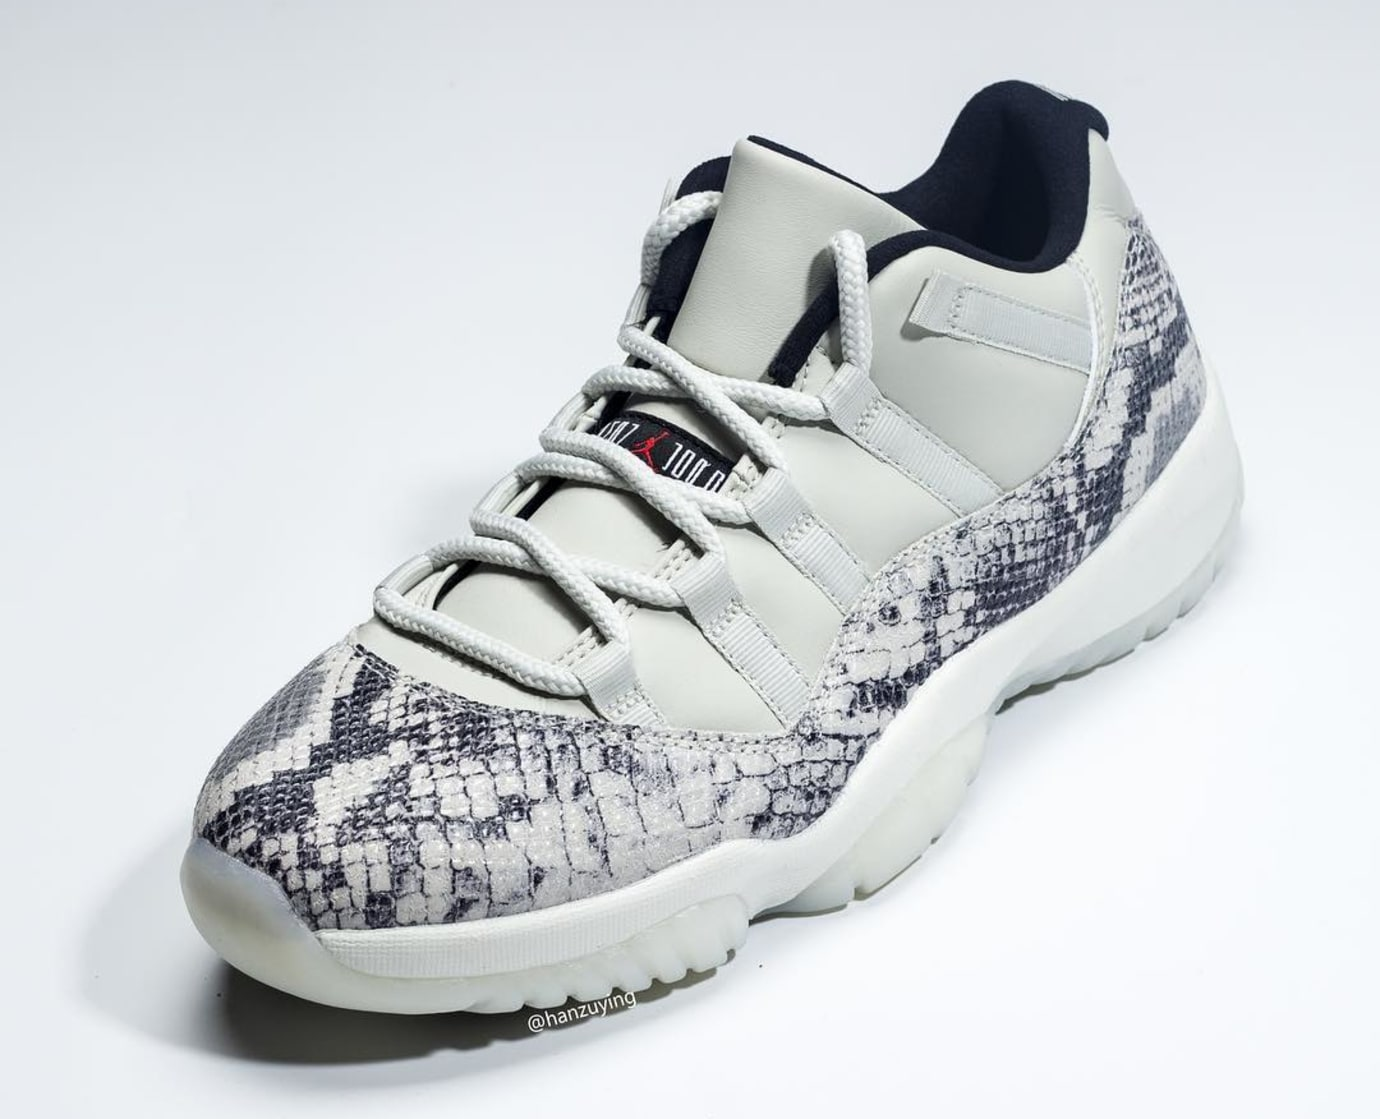 Air Jordan 11 Low SE Snakeskin 'Light Bone/University Red-Sail-Black' CD6846-002 5